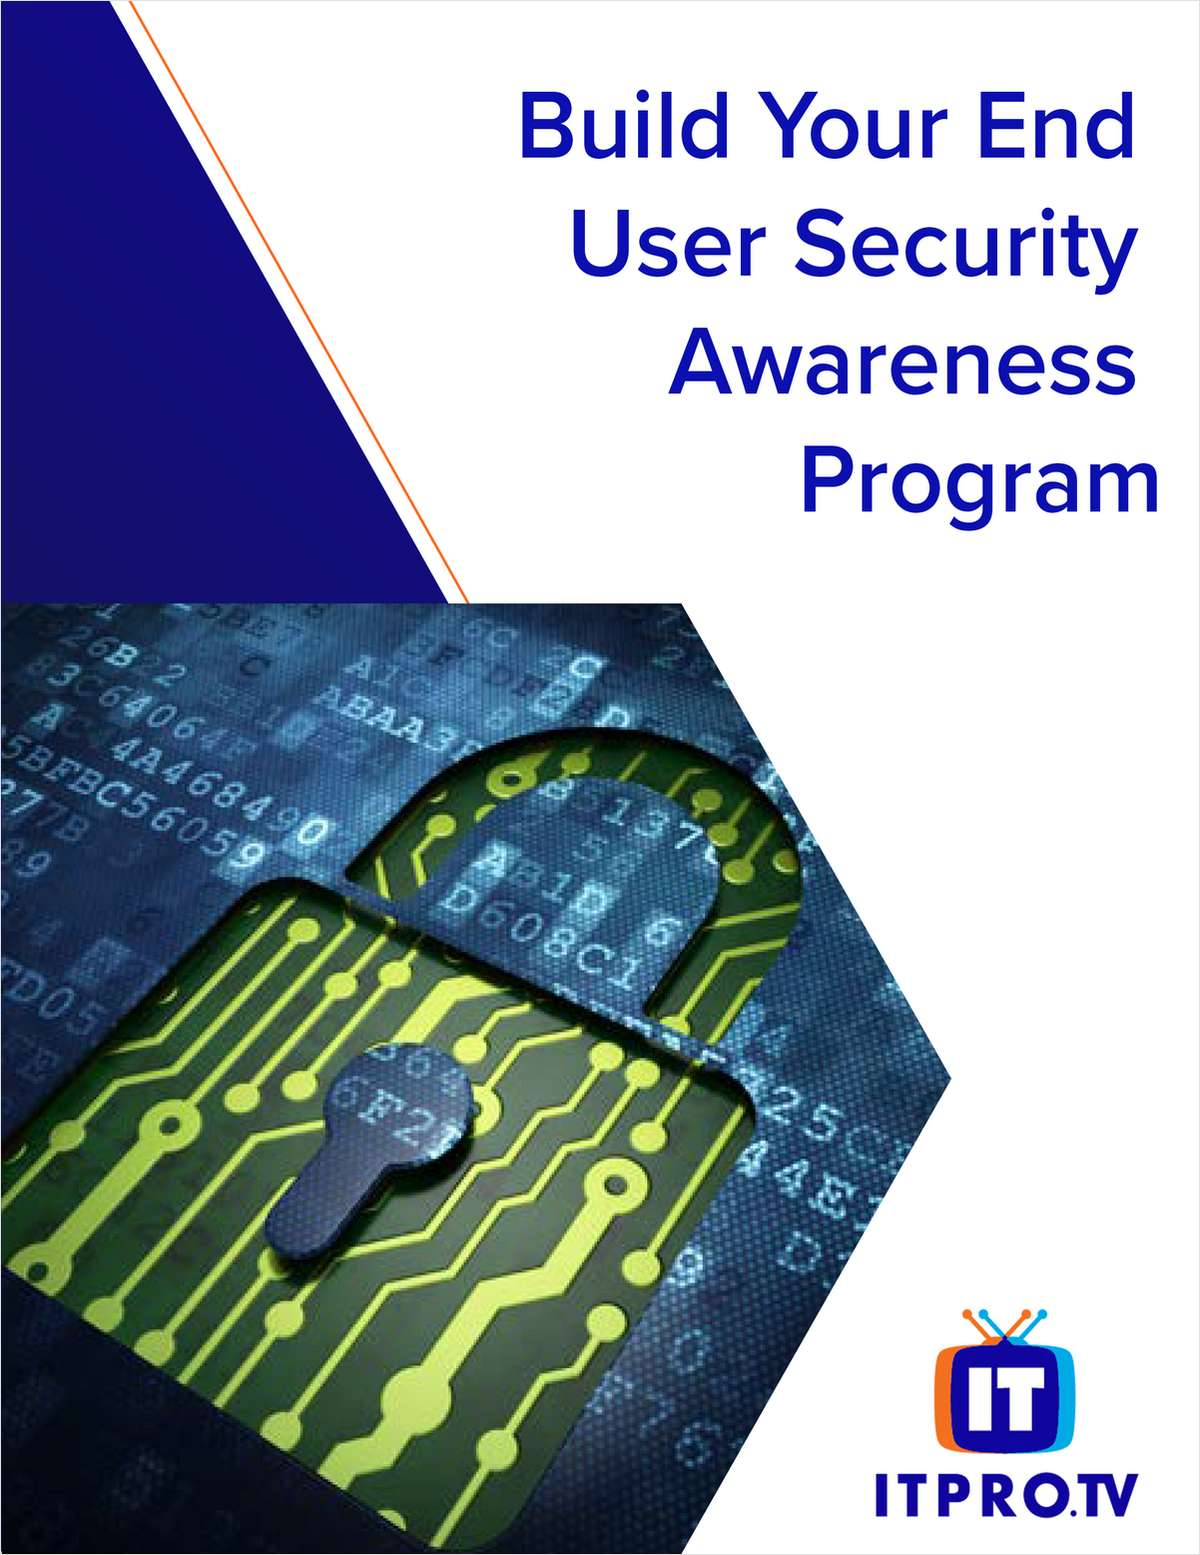 3 Ways to Build Your End User Security Awareness Program